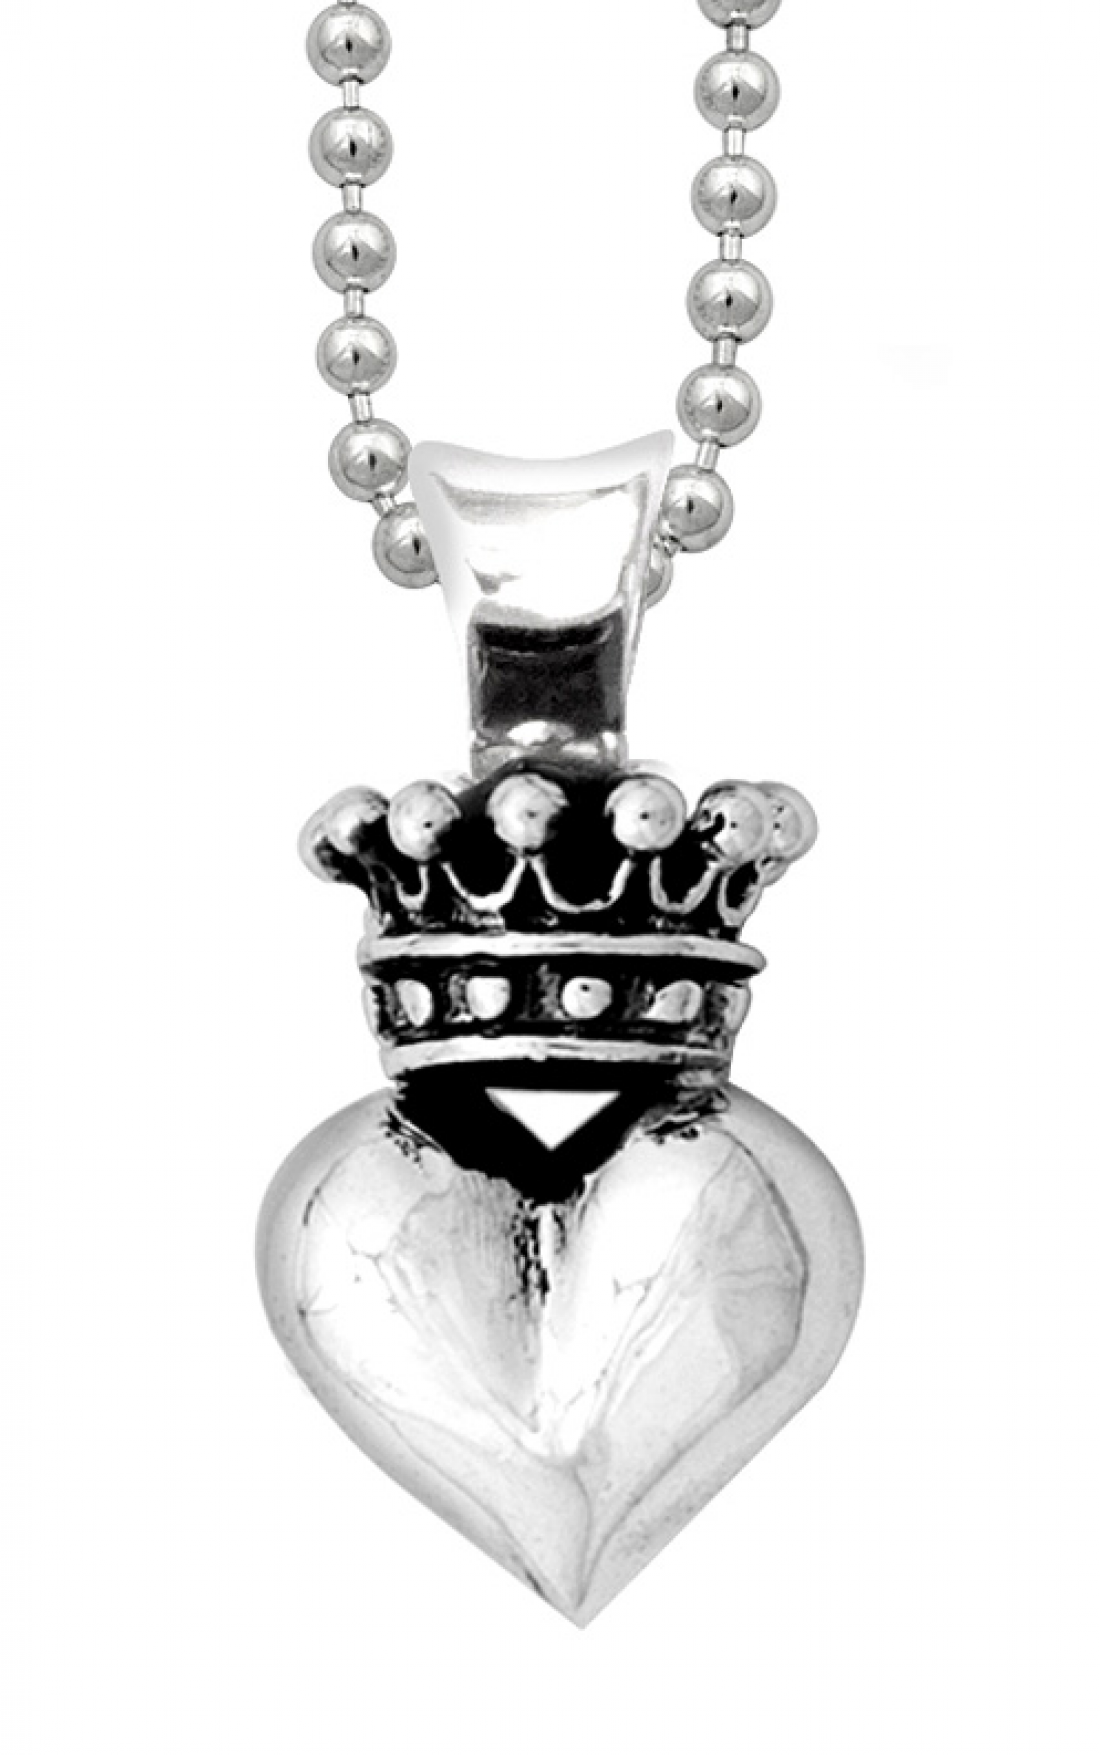 Queen-Baby-Jewellery-Q10-5071-Solid-Silver-3D-Crowned-Heart-Chain-Boudi-UK